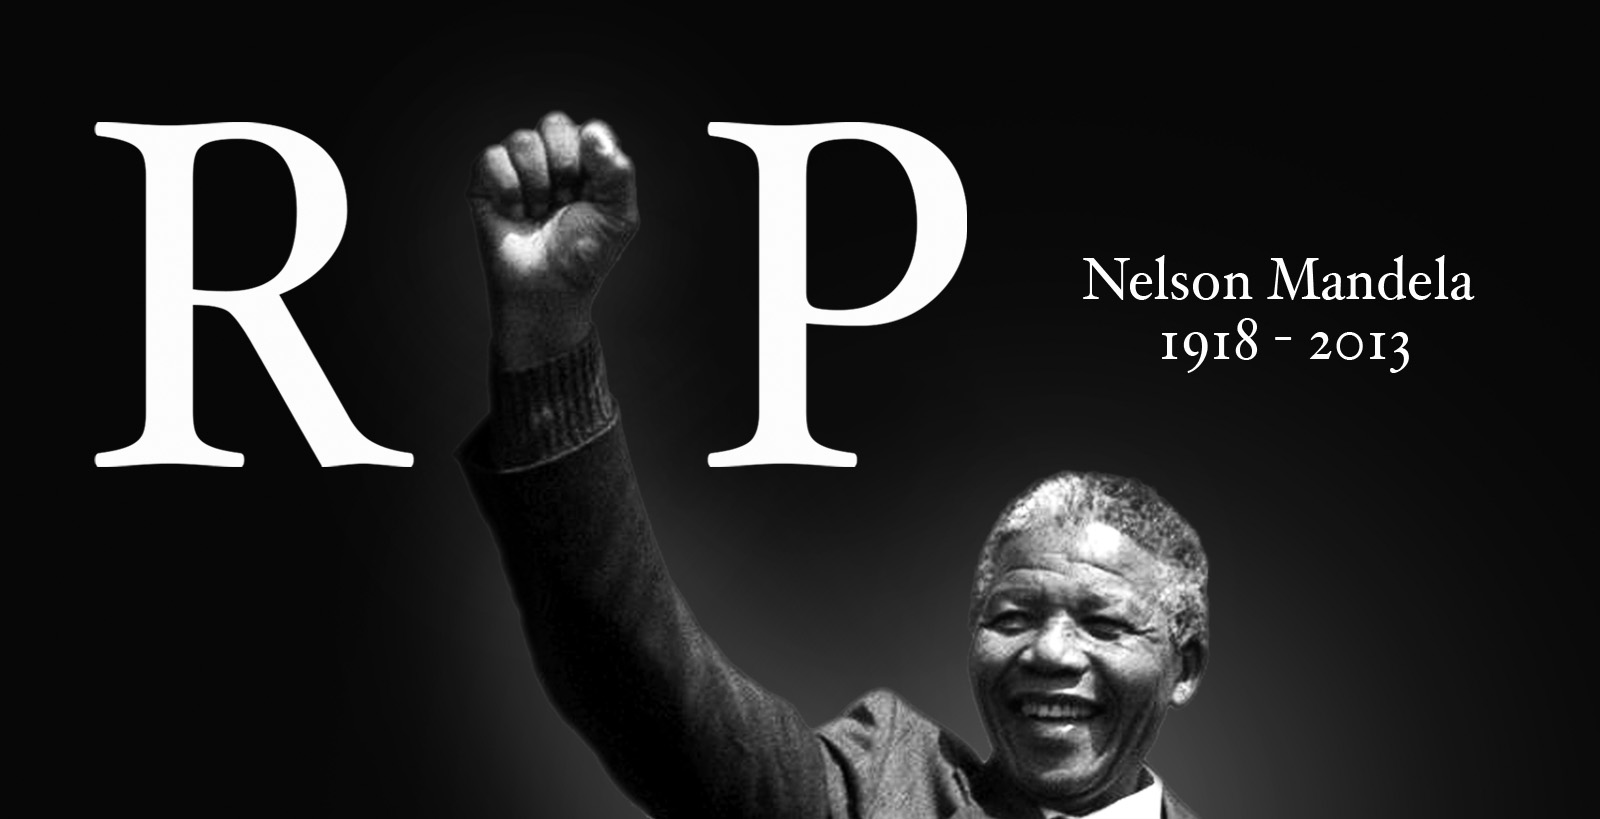 DO MORE GOOD | RIP Nelson Mandela